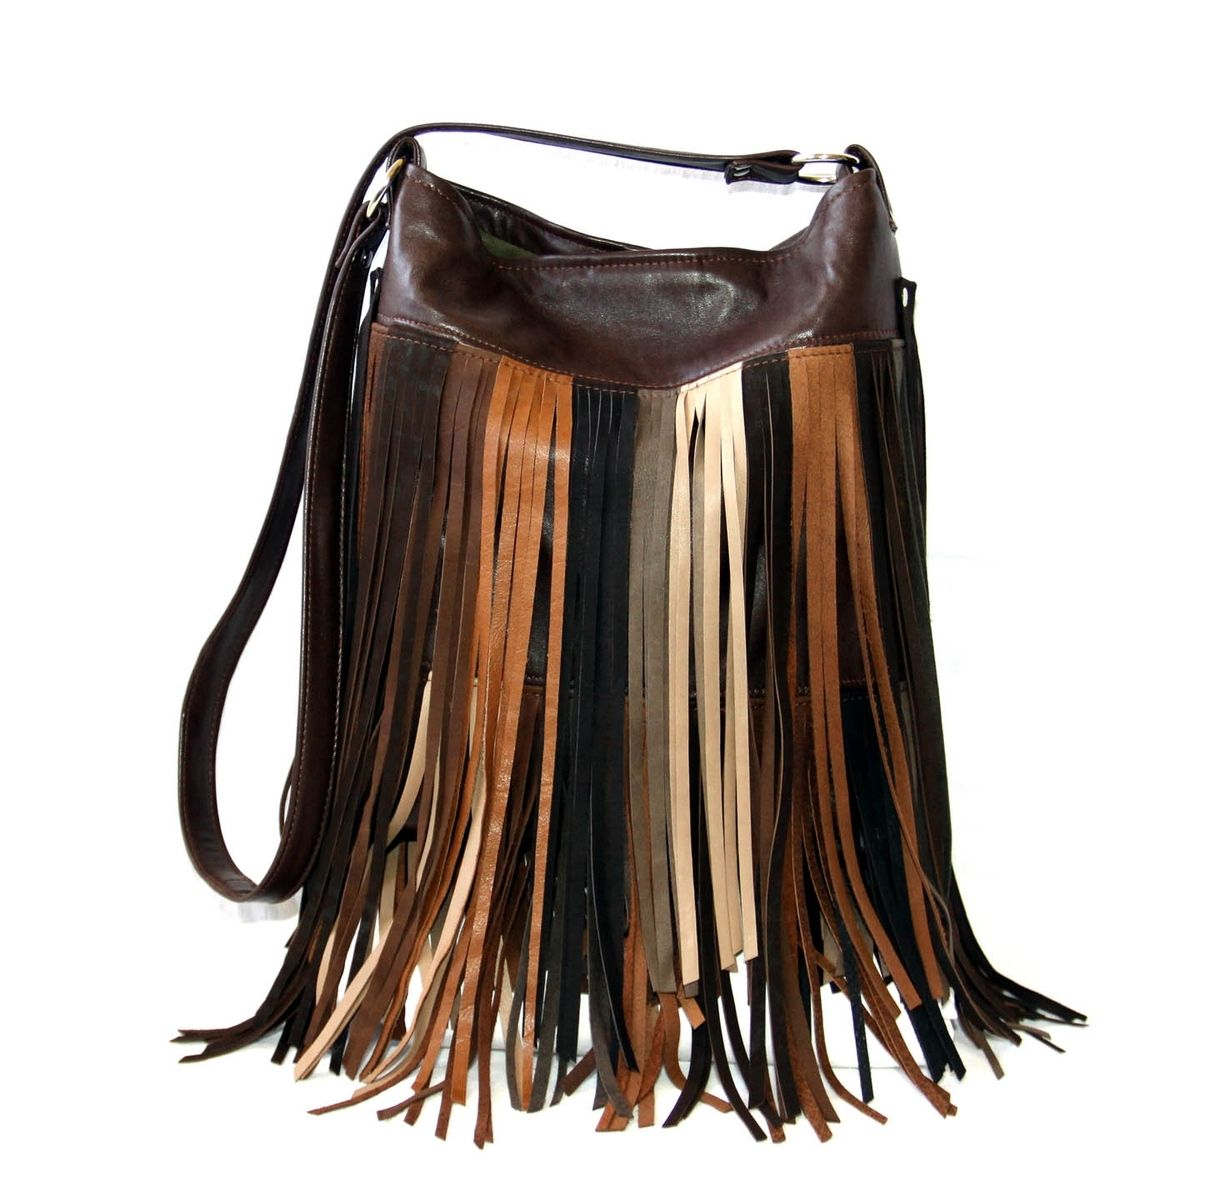 Custom Made Upcycled Leather Fringe Handbag Multi Colored Browns